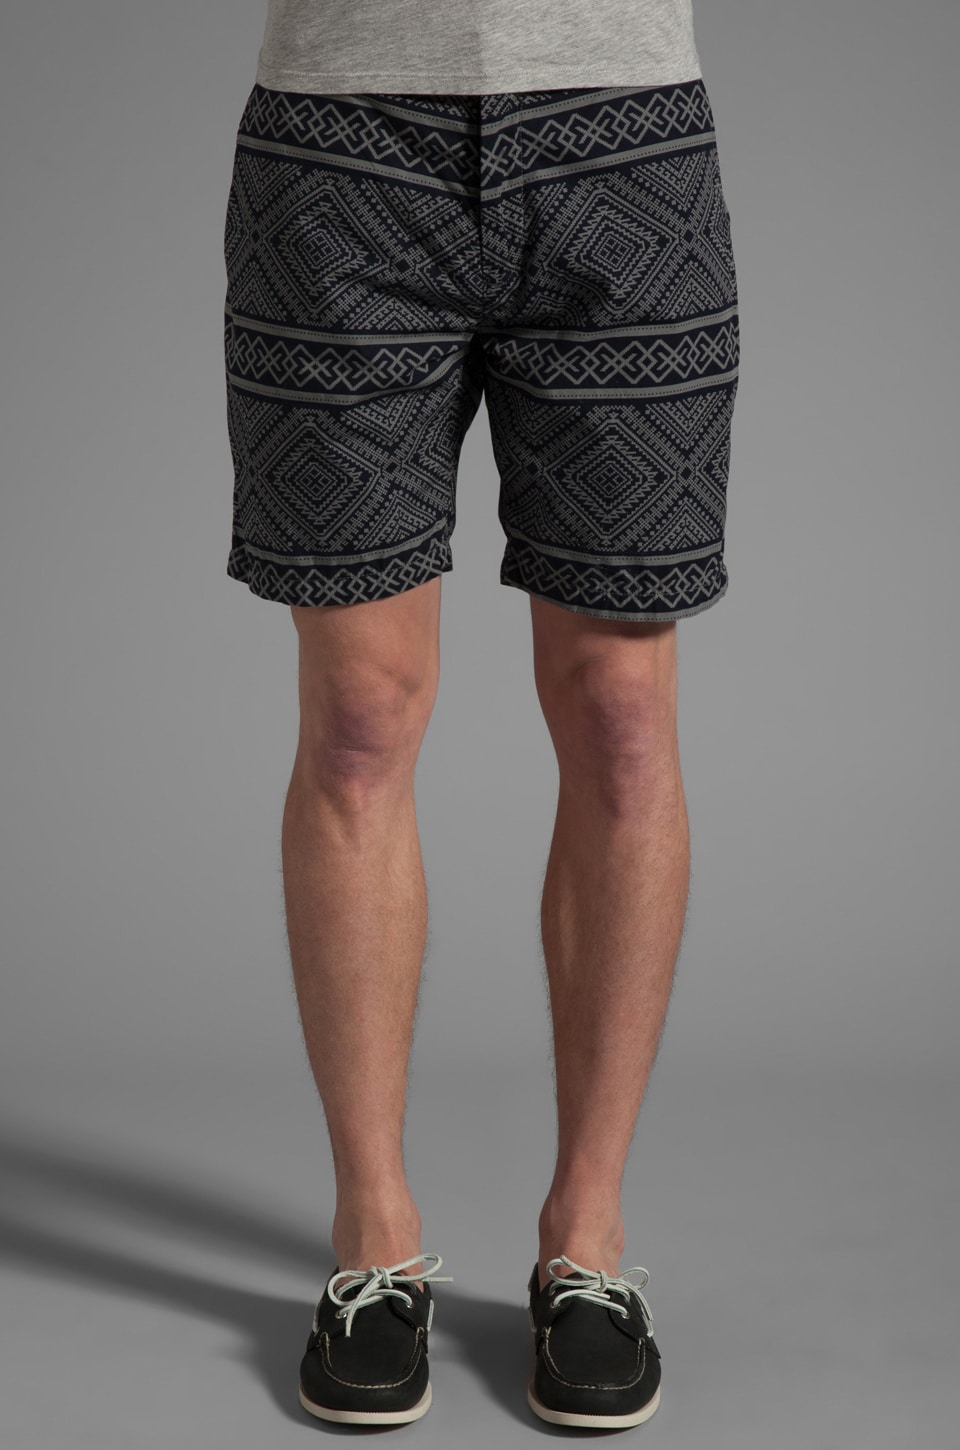 PRPS Goods & Co. Aztec Short in Blue